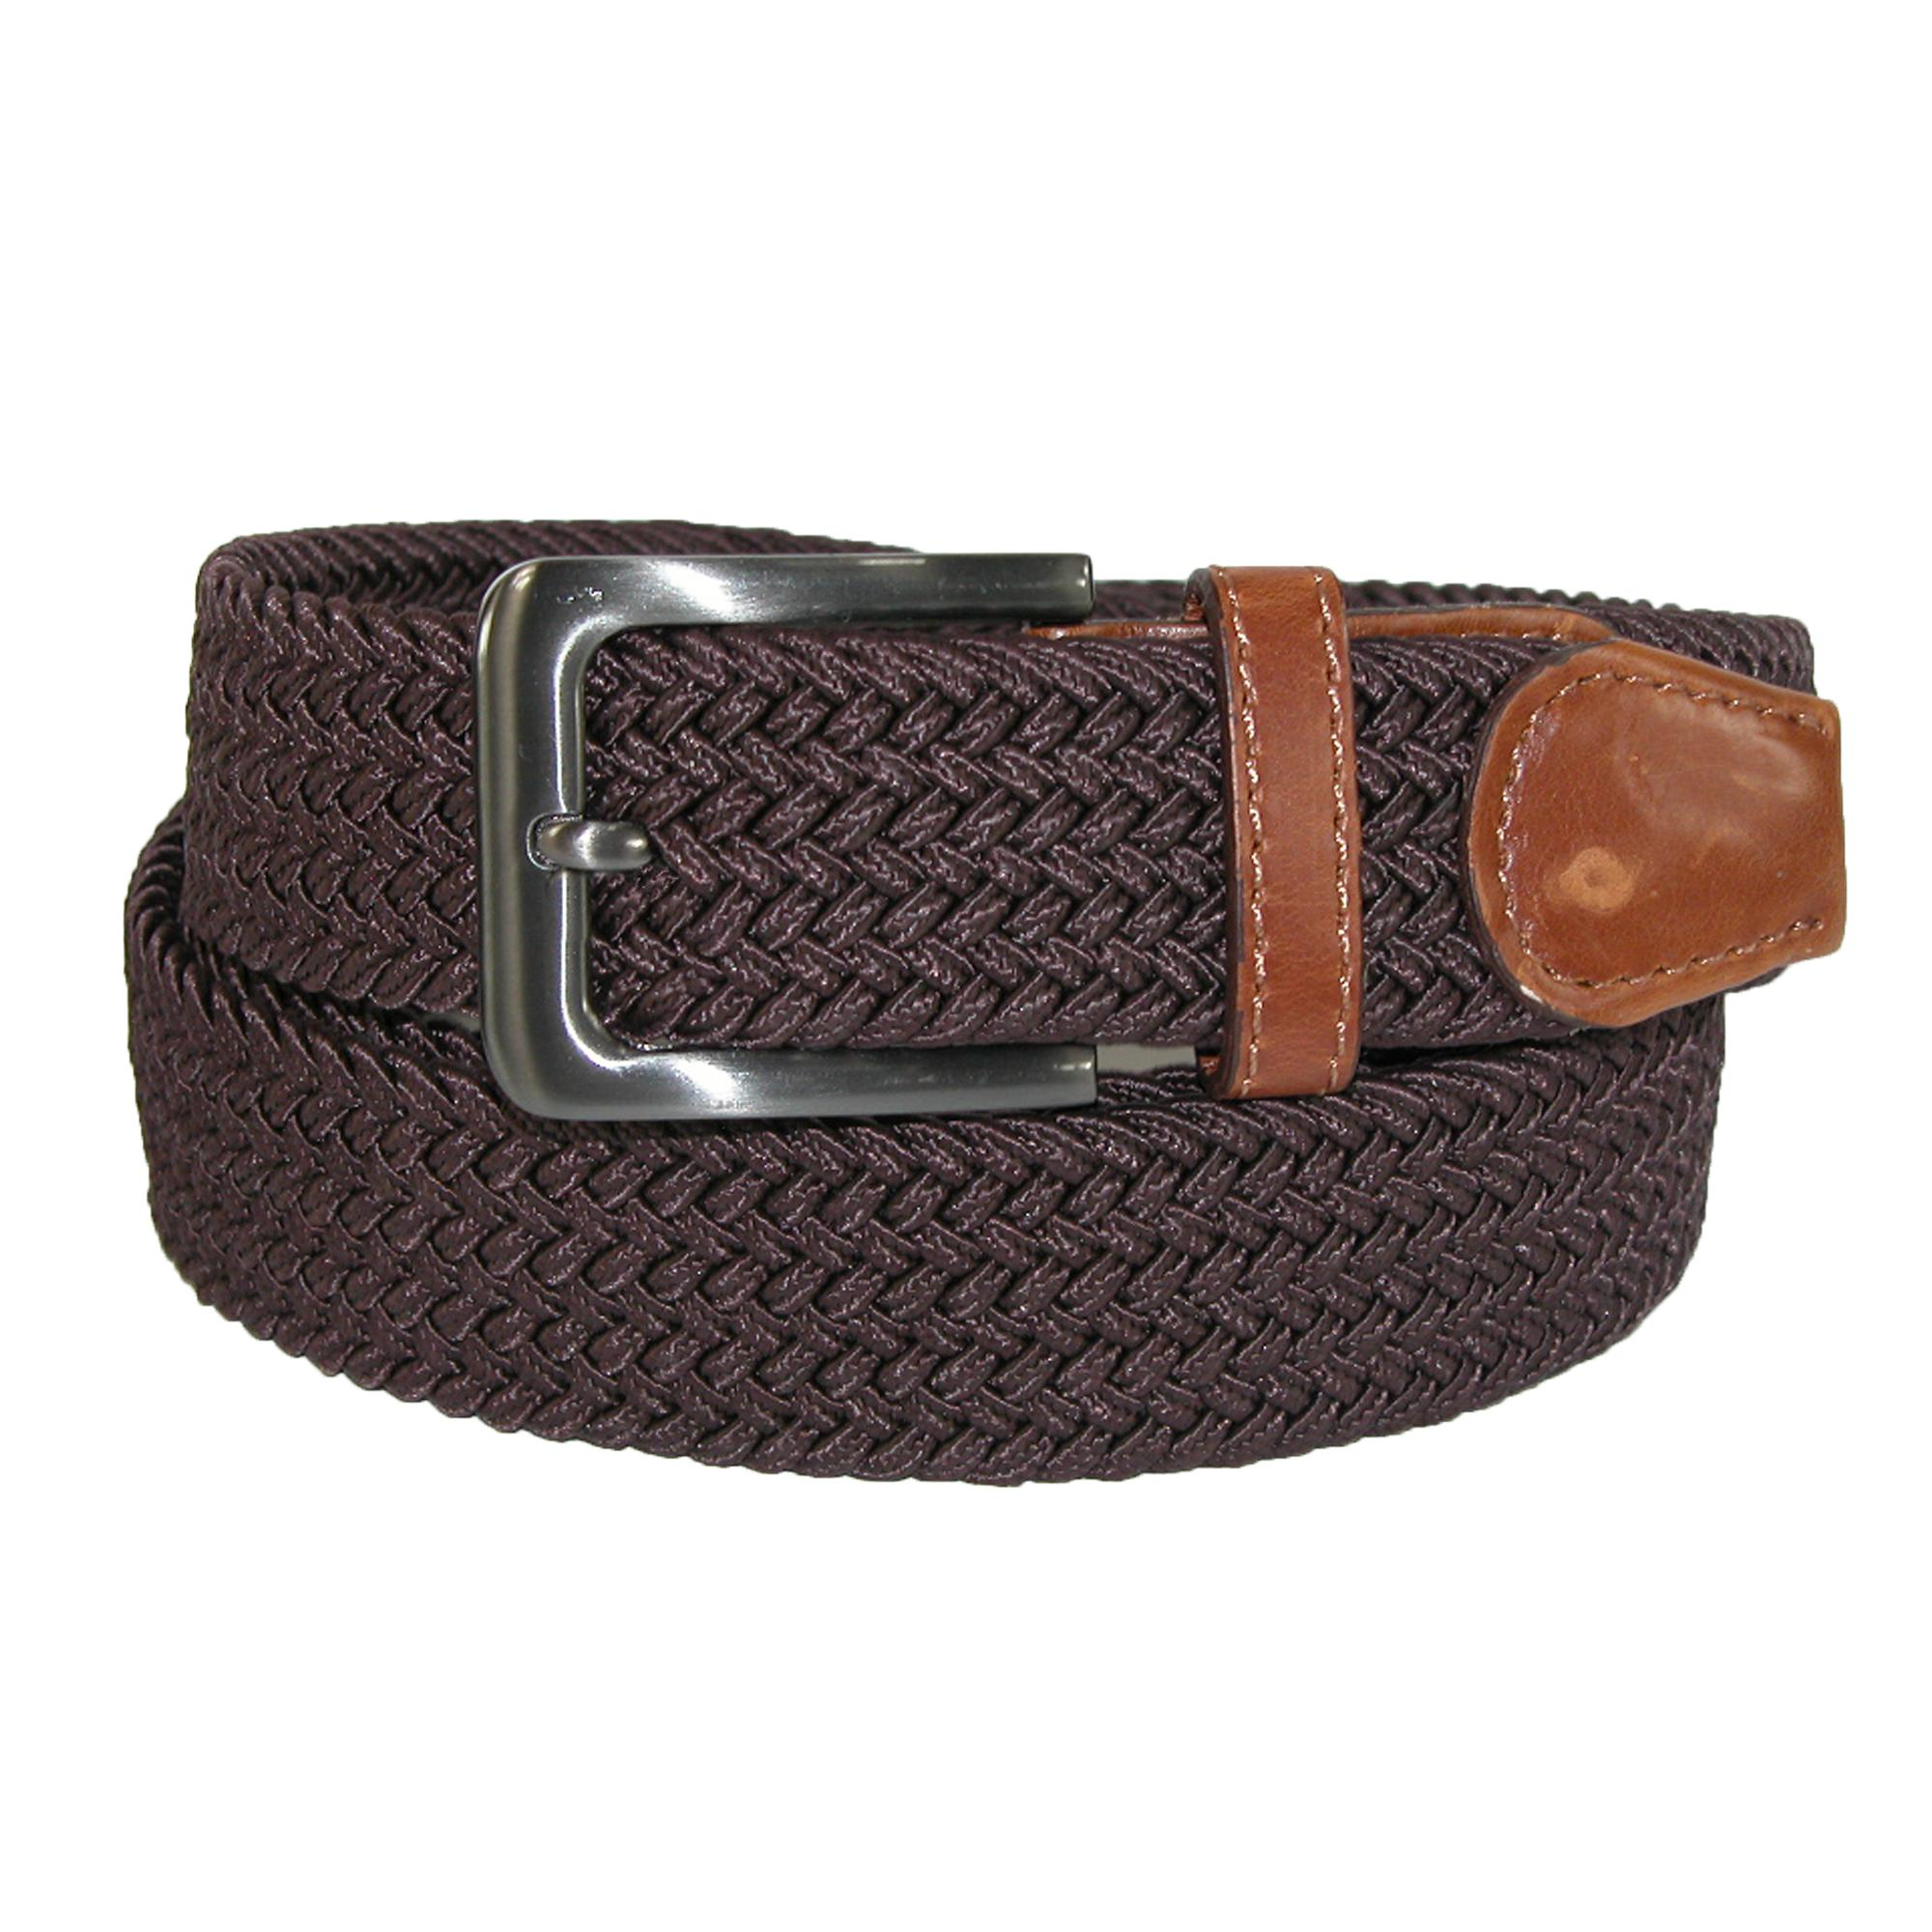 Belts for Men come in many different styles, colors and designs. And at Kohl's, we have all the options you've come to expect! Kohl's has all the men's belt brands you know, with choices like Croft & Barrow men's belts and Apt. 9 men's belts.